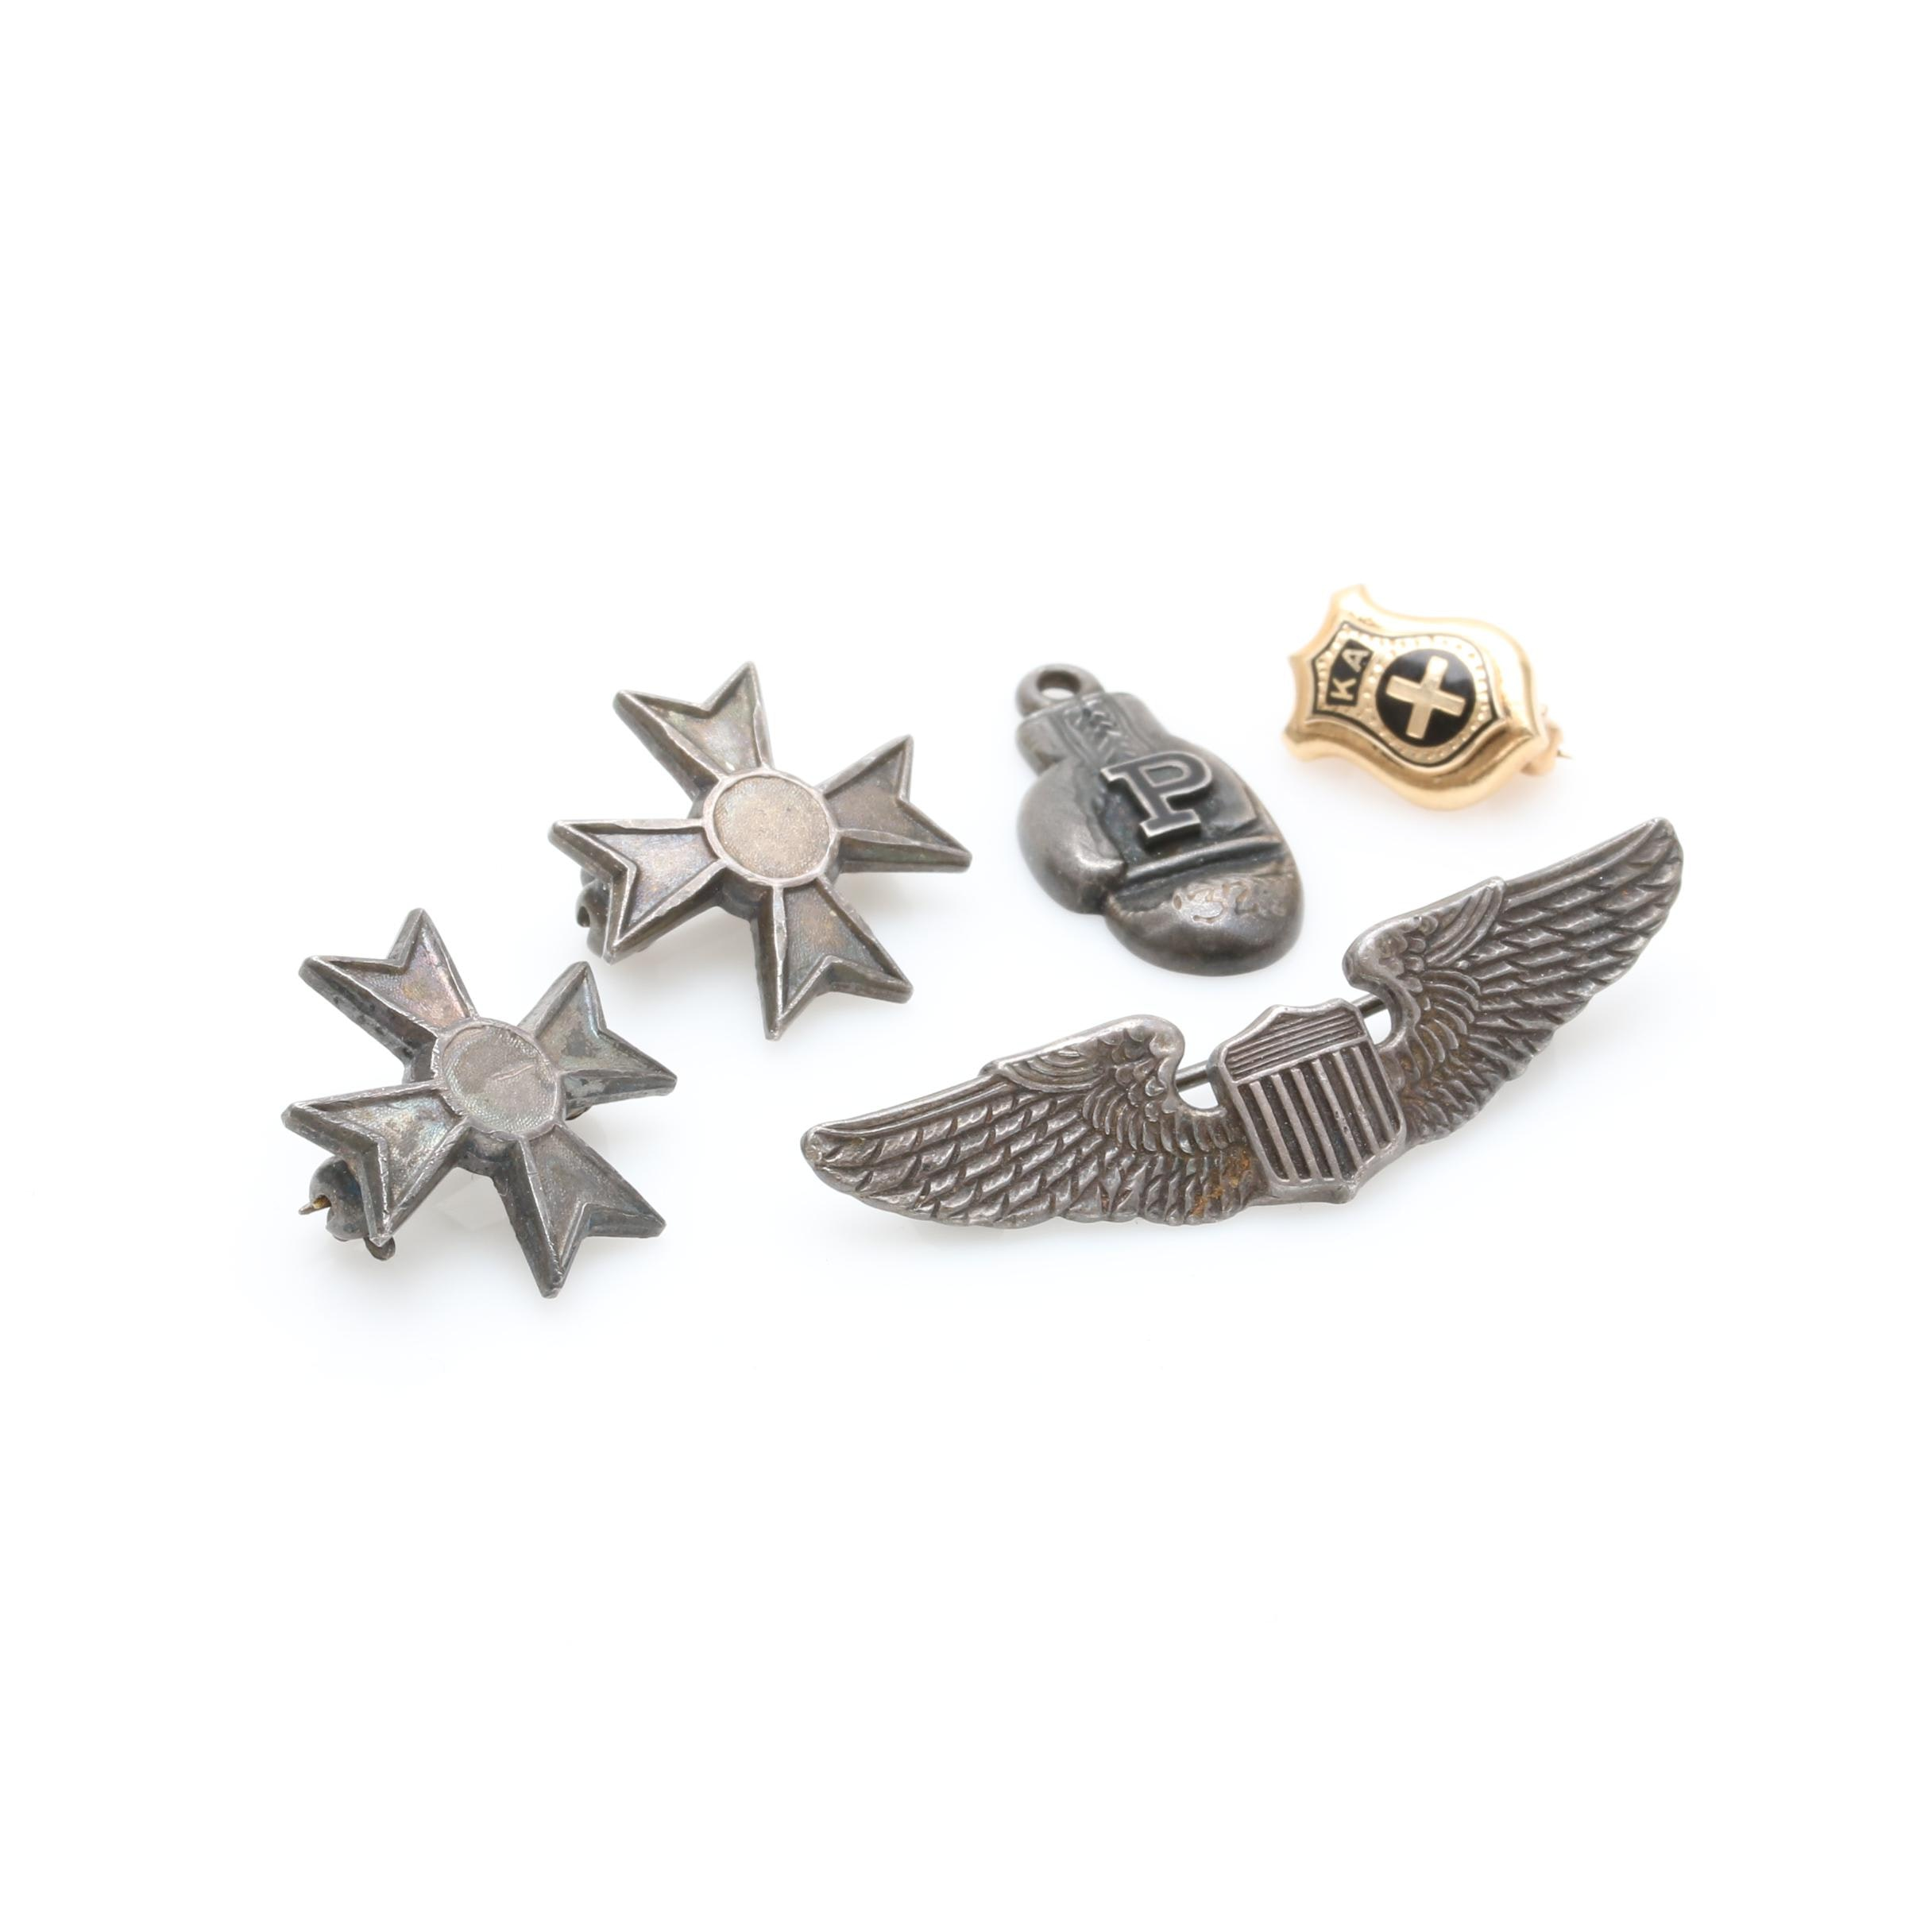 10K Yellow Gold and Sterling Silver Service Pins and Charm